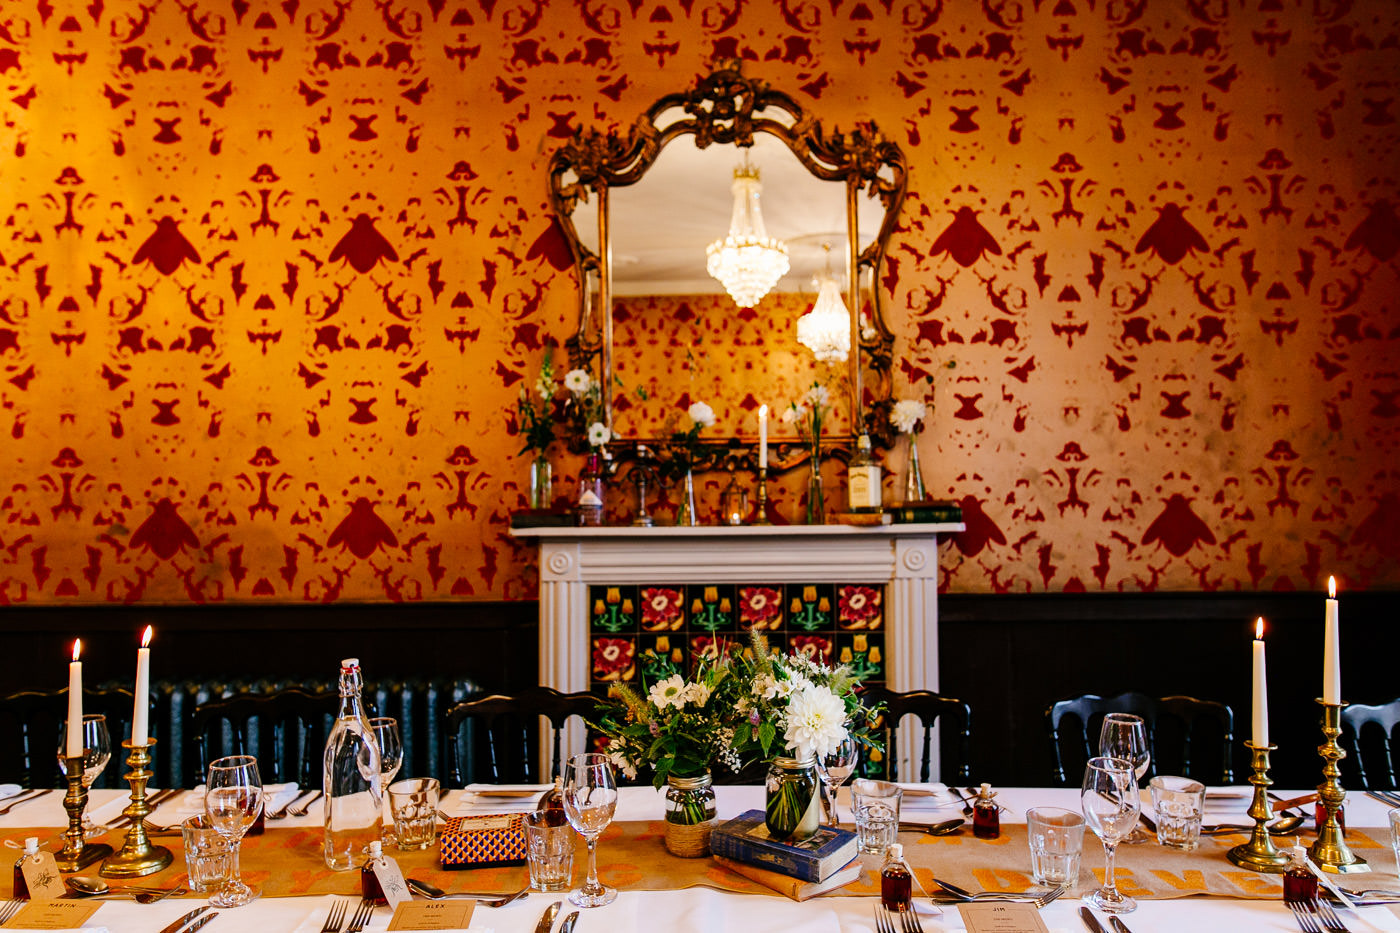 The-bell-in-Ticehurst-pub-kent-wedding-photographer-London-Epic-Love-Story-081